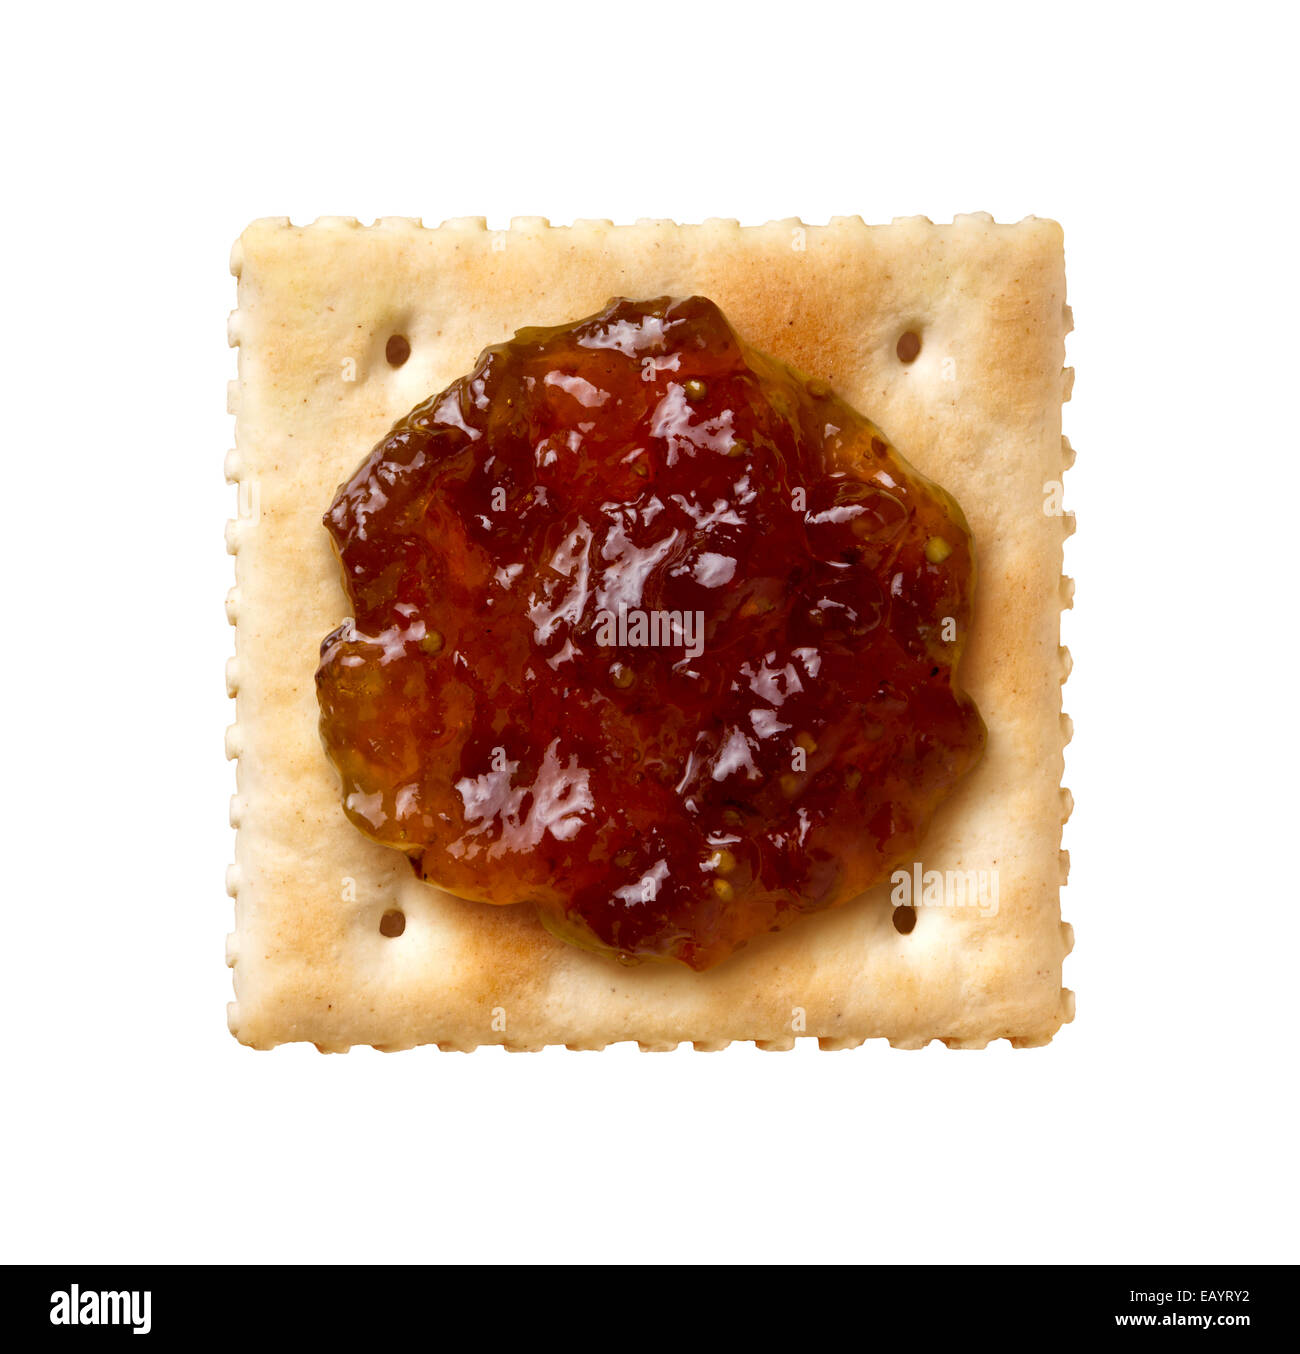 Fig Preserves on a Saltine Cracker isolated on a white background. - Stock Image